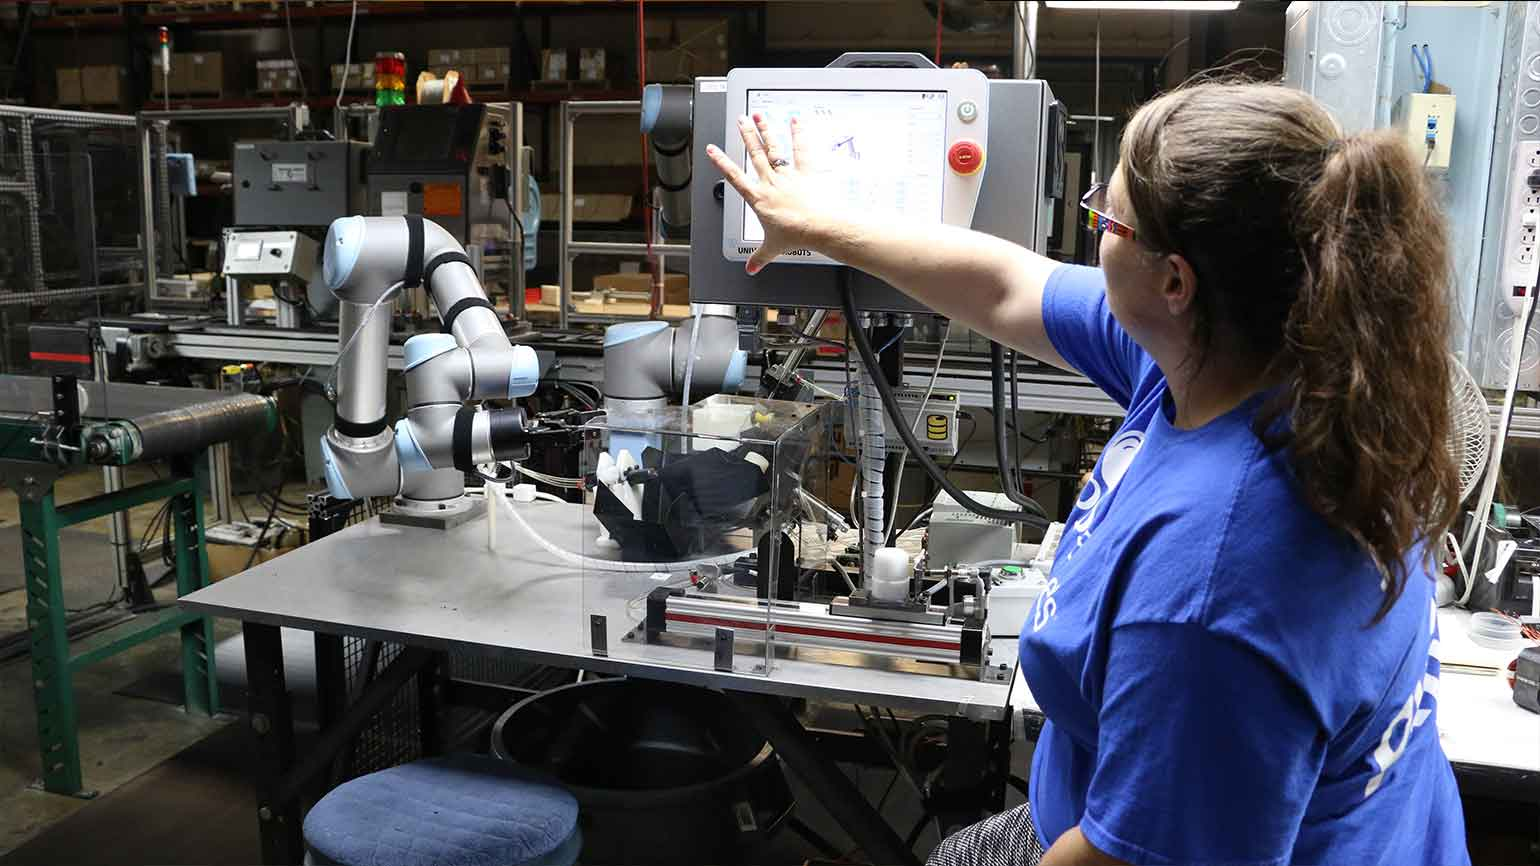 human-robot-collaboration-in-electronics-and-technology-industry